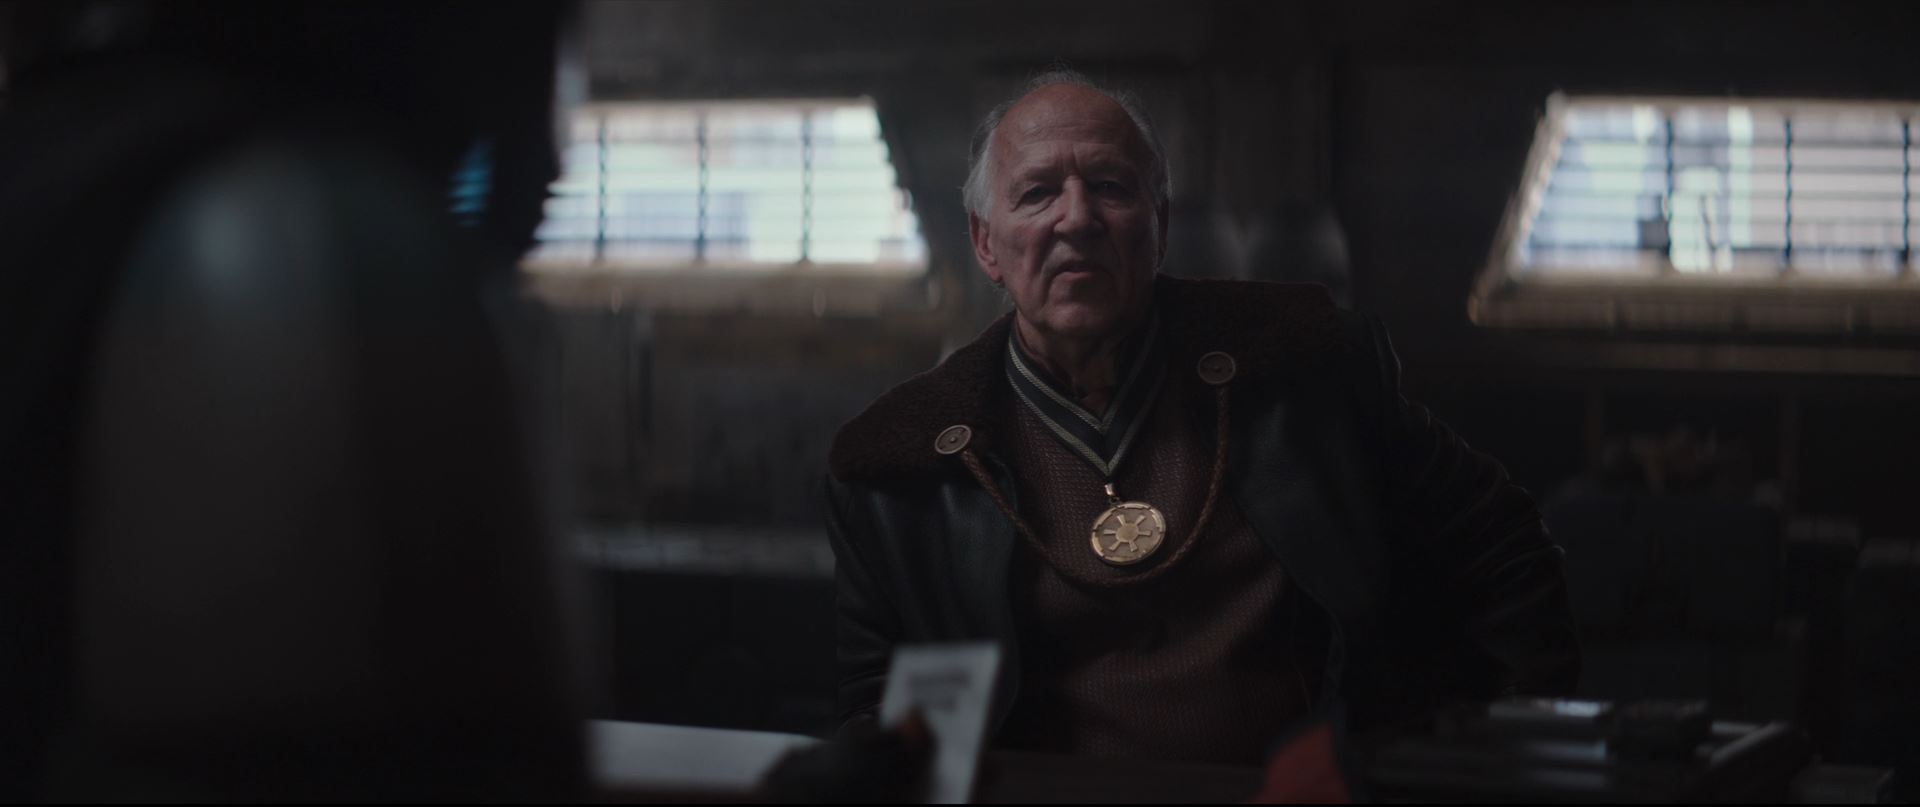 The Mandalorian - Werner Herzog as The Client